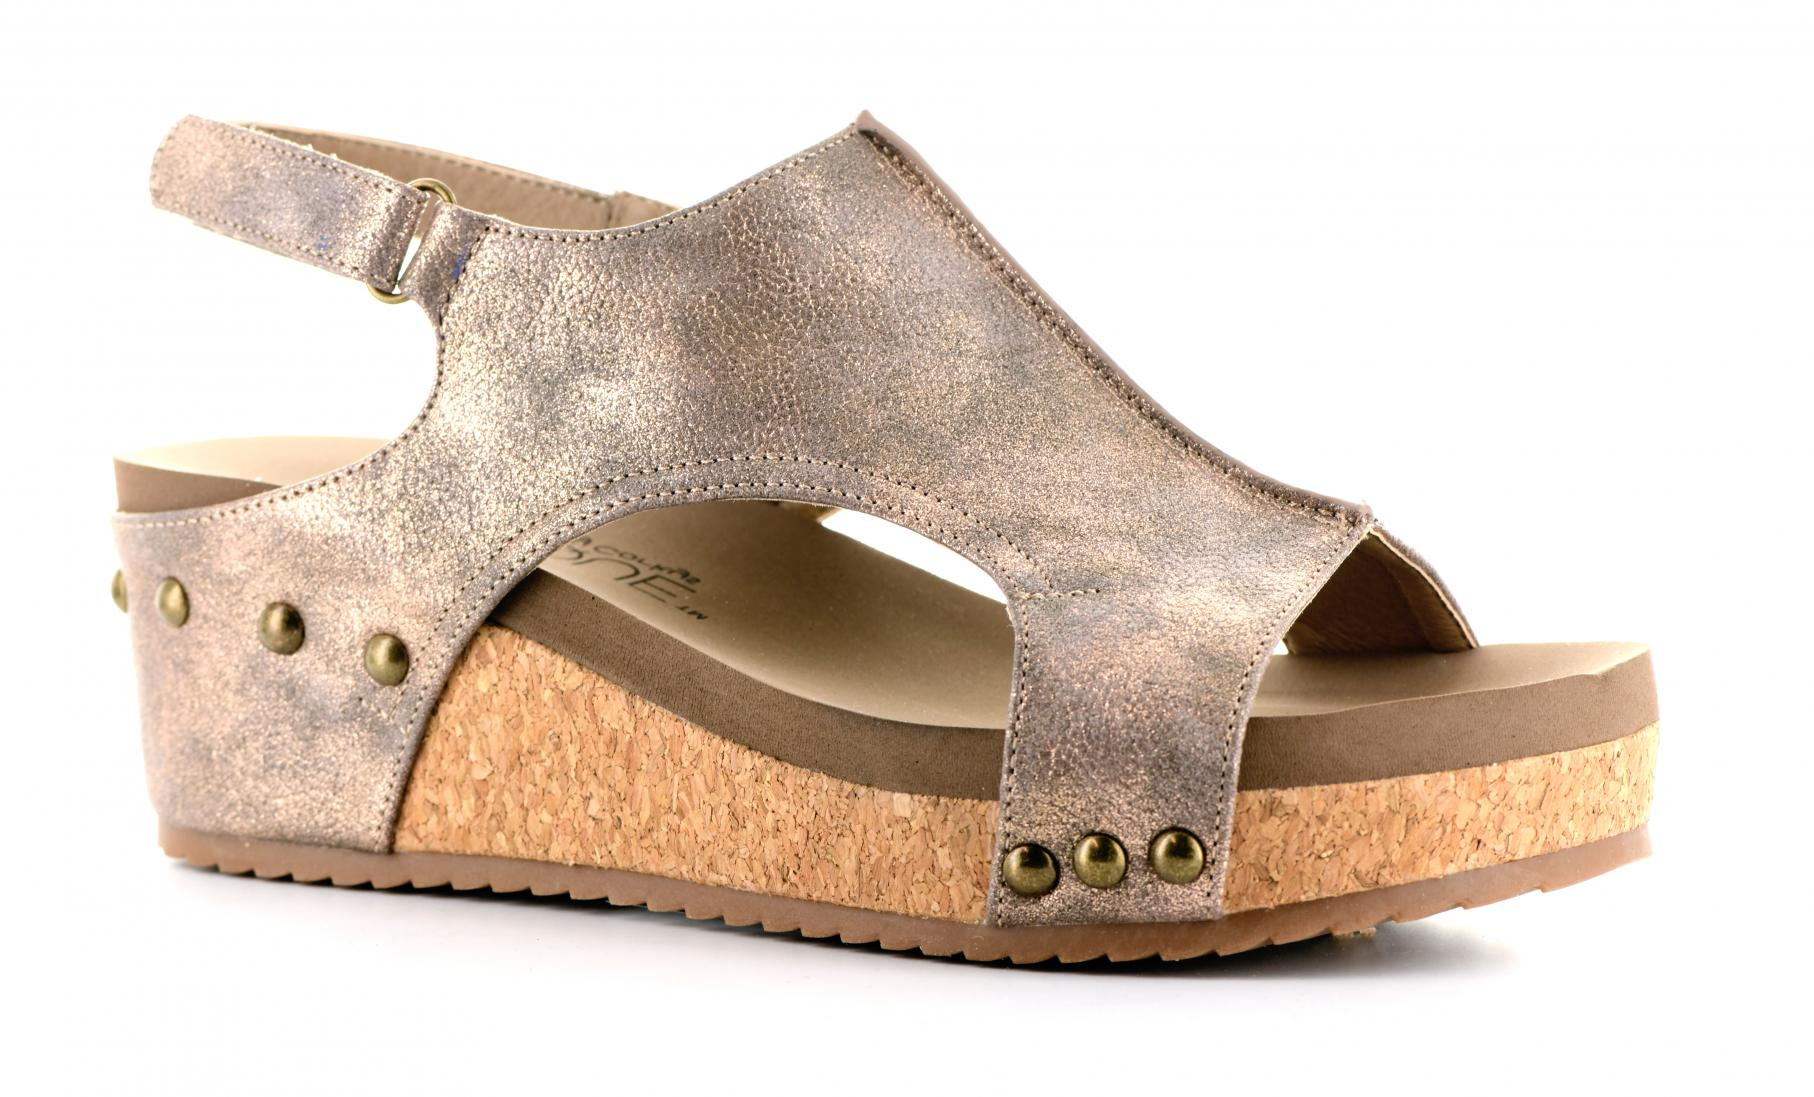 Corkys Shoes - Volta Bronze Wedge